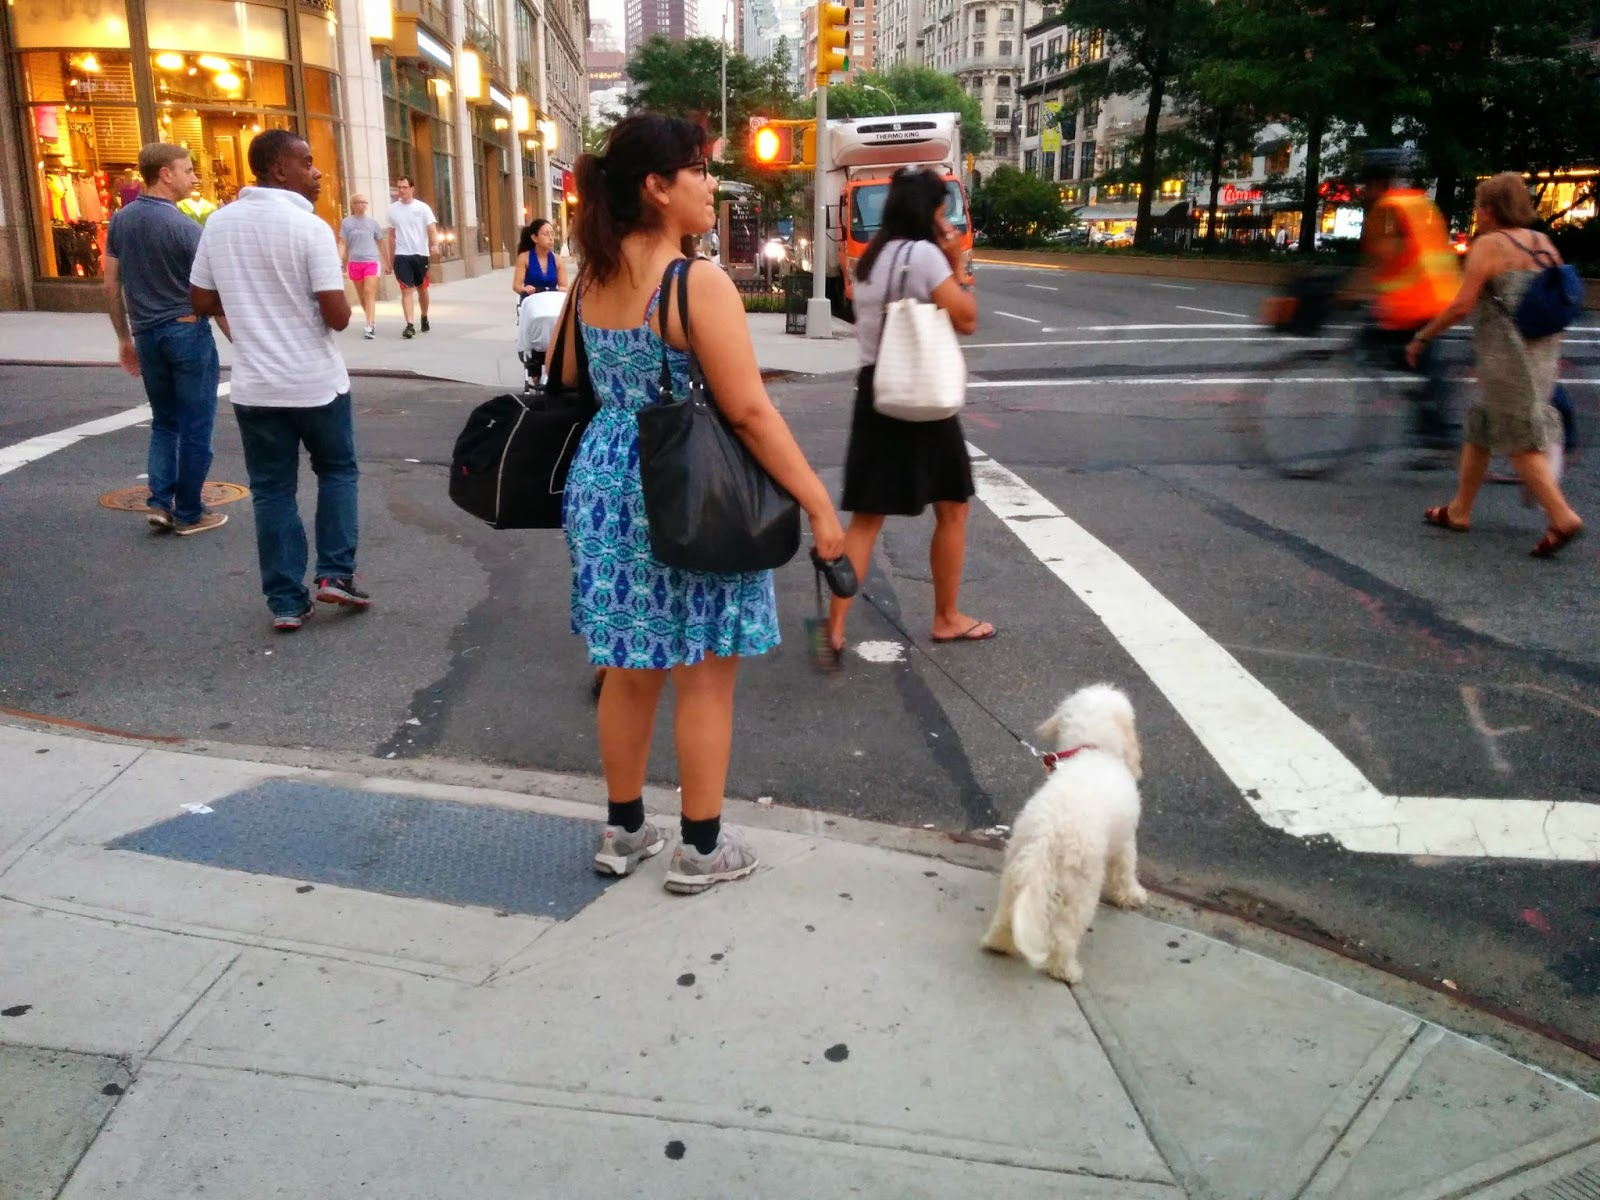 New York City is surprisingly dog friendly!  There are so many dogs and dog lovers in the Big Apple.  Dogs, Pet friendly travel